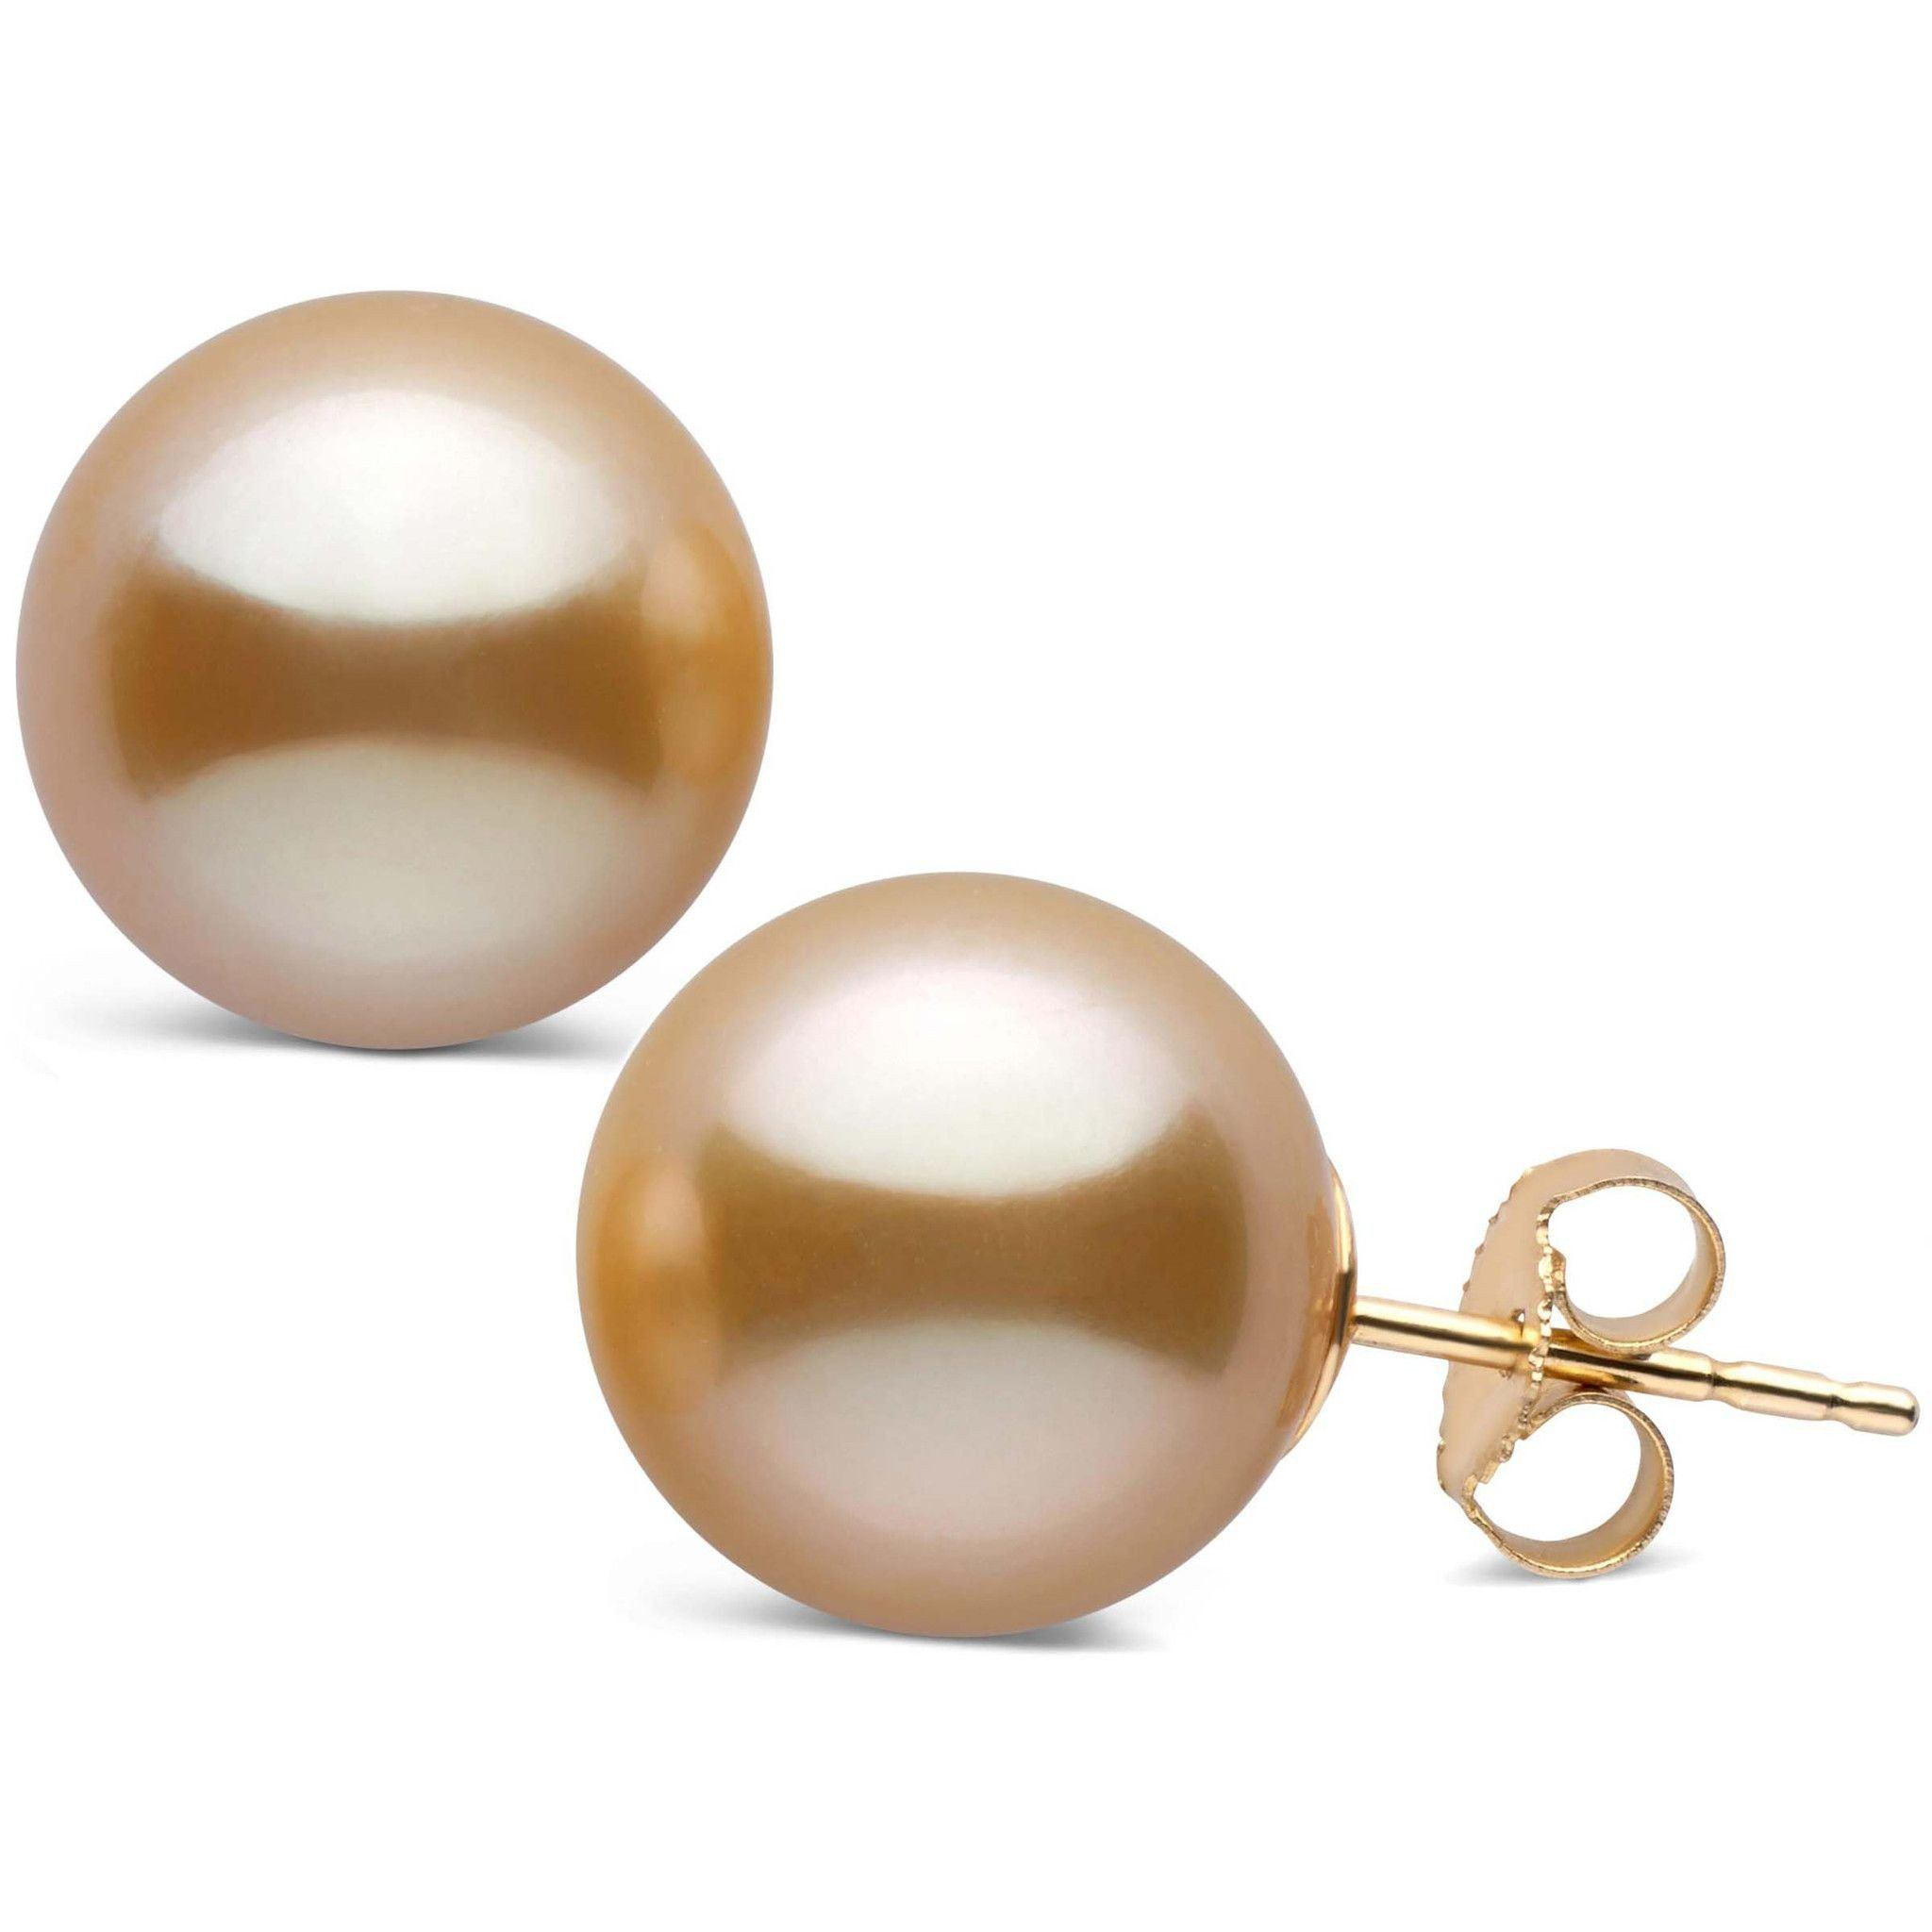 12.0-13.0 mm AAA Golden South Sea Pearl Stud Earrings